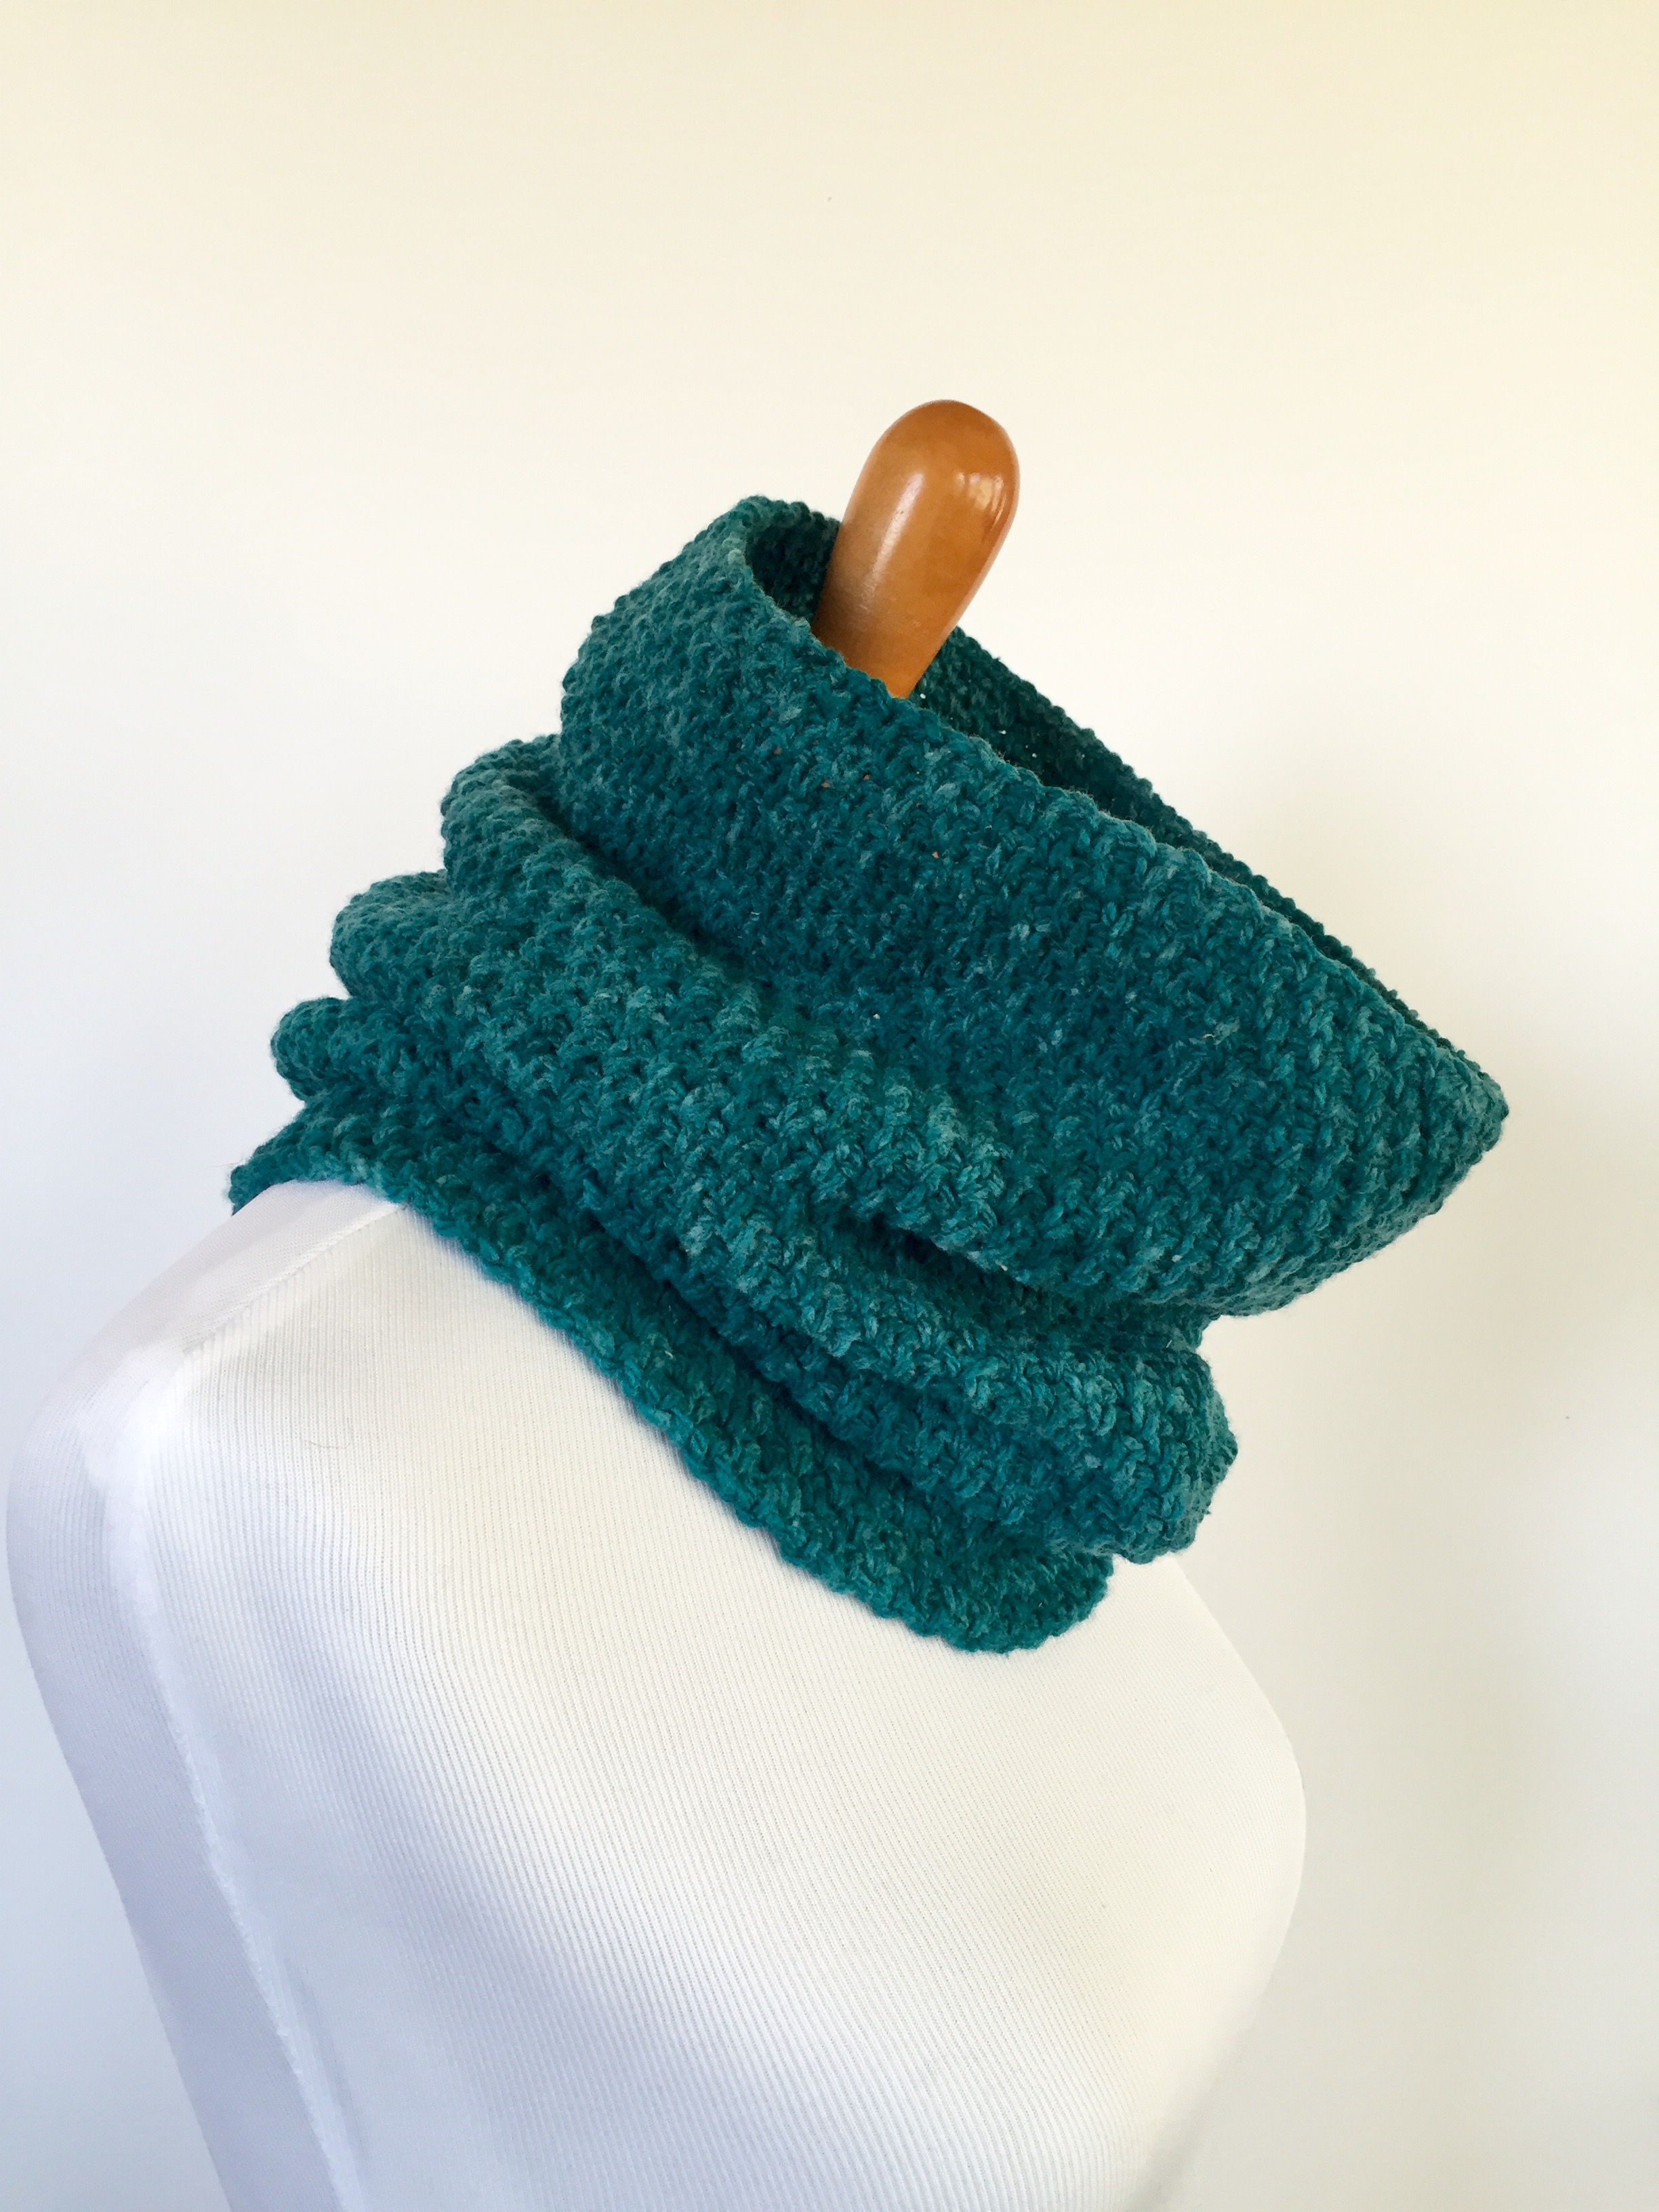 Shannons cowl in teal wool by Little Monkeys Designs